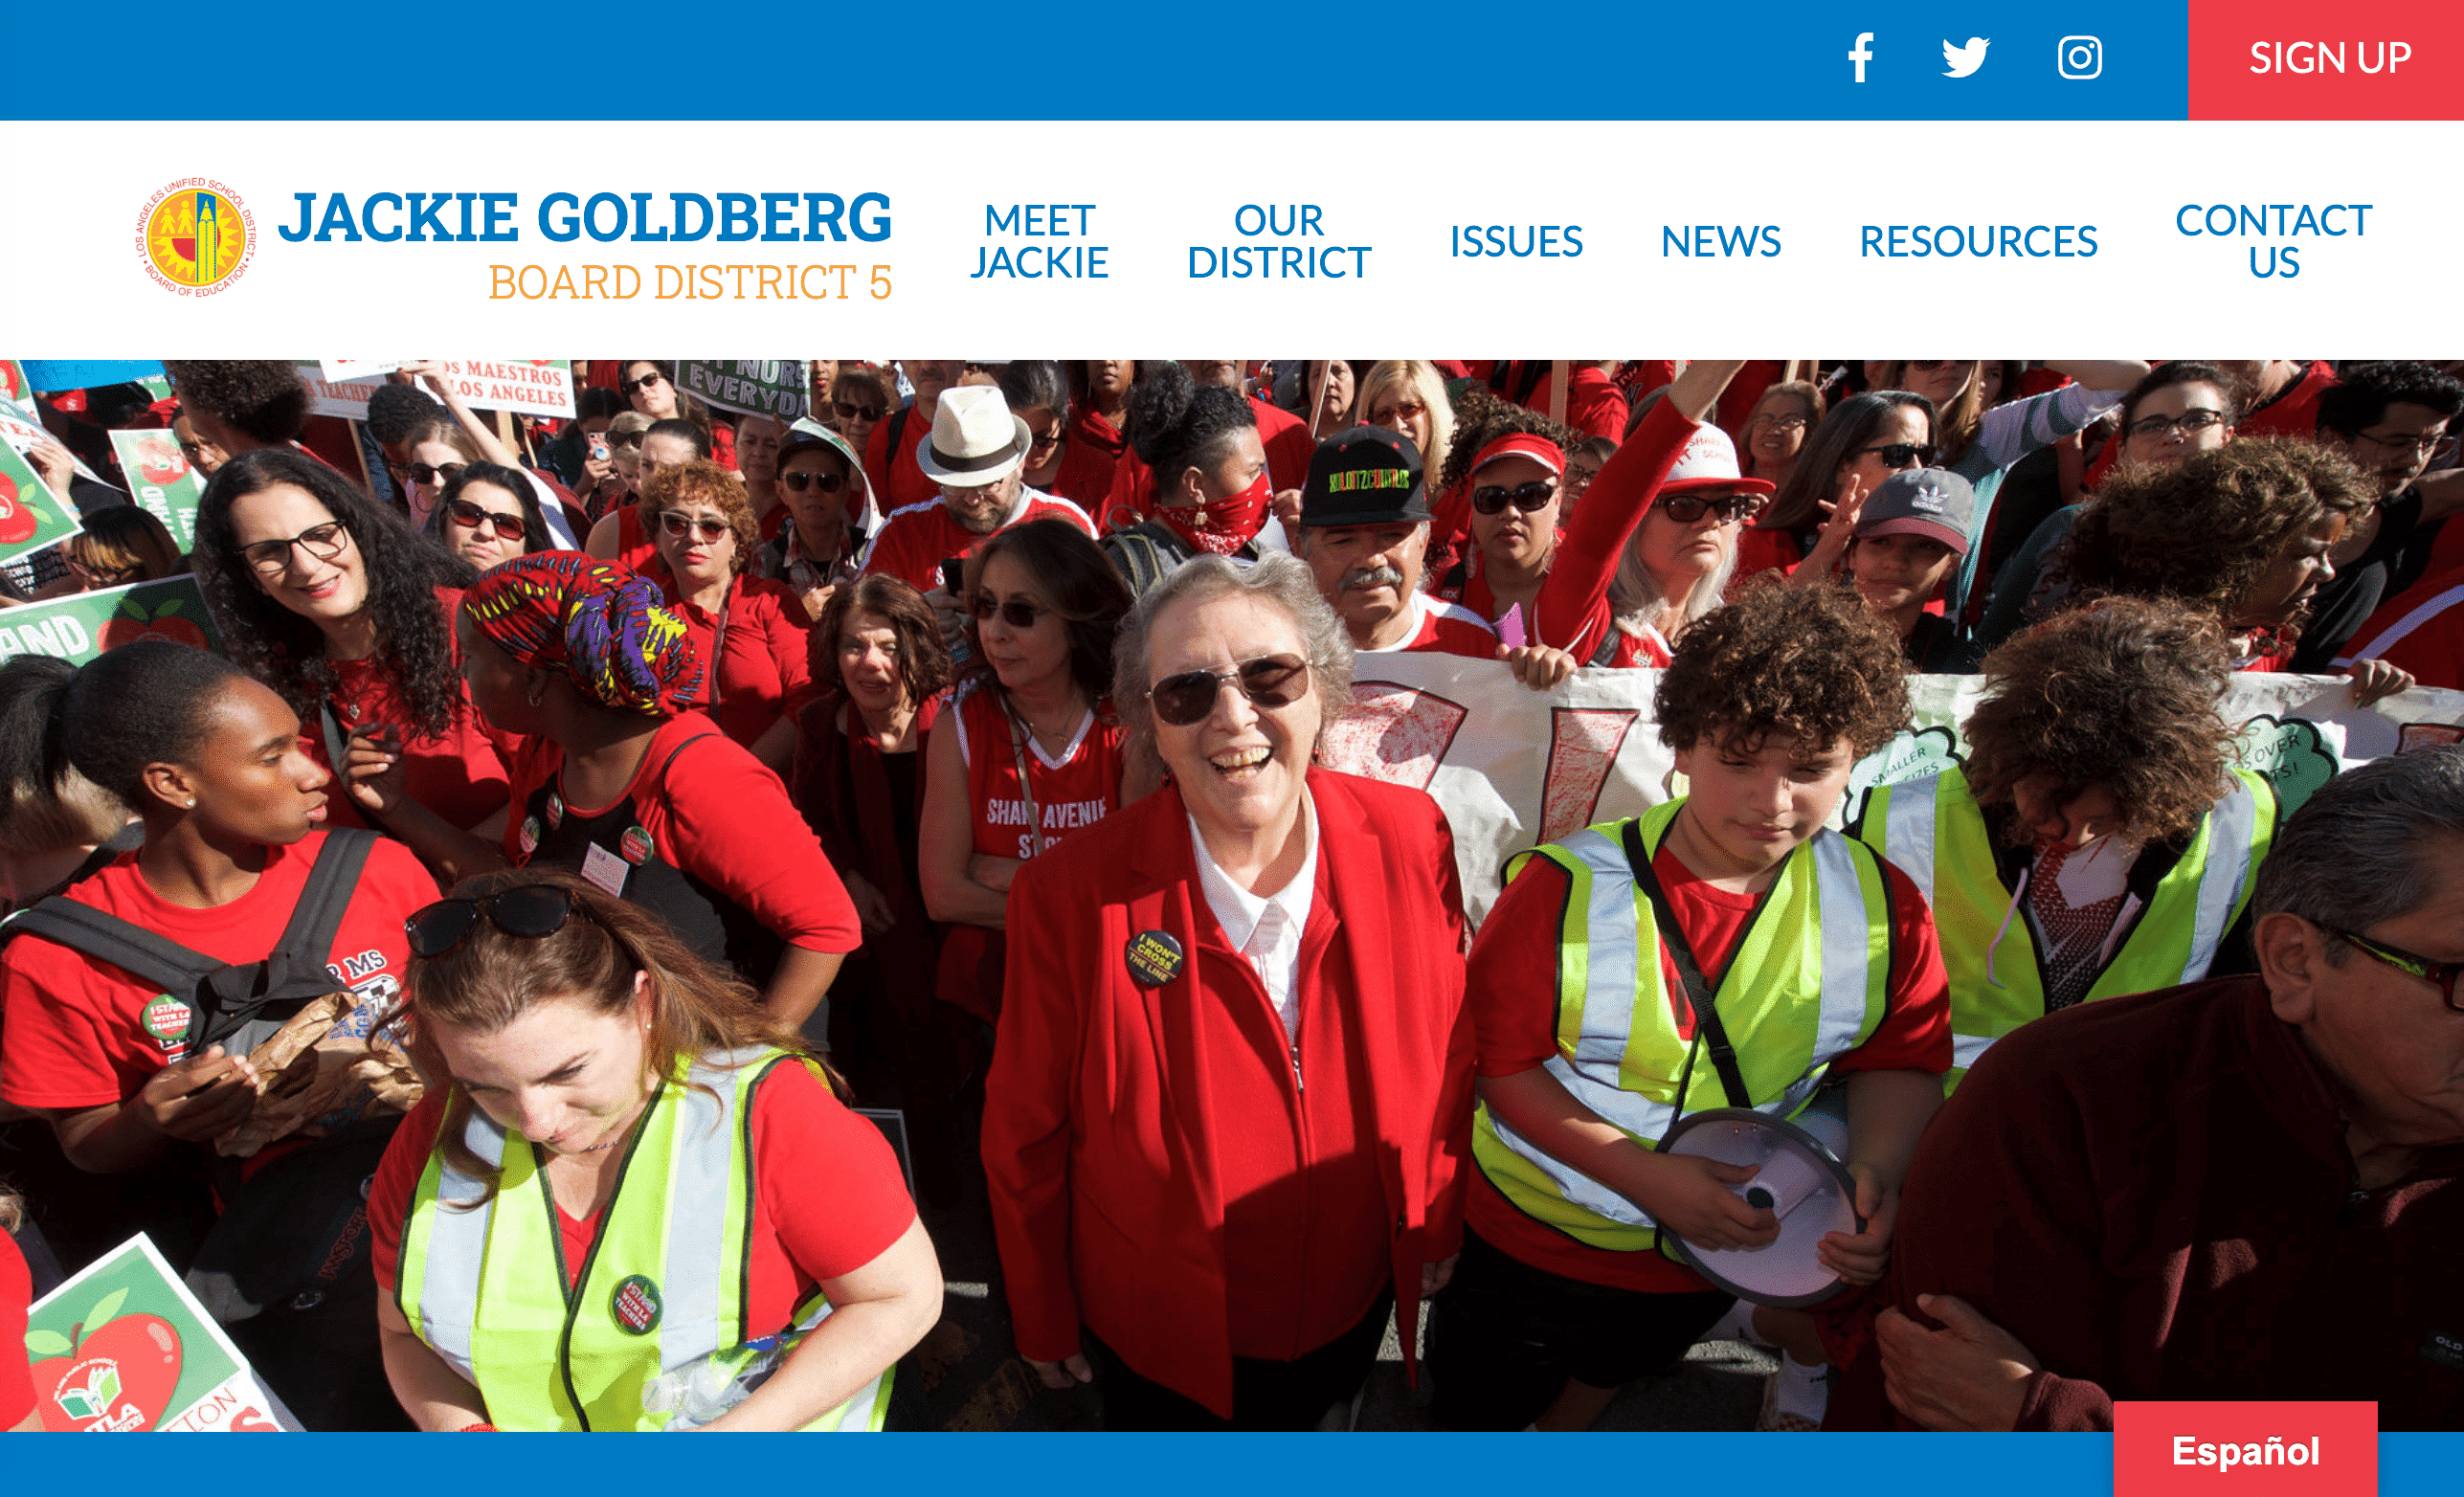 Jackie Goldberg's website features a bold hero image.